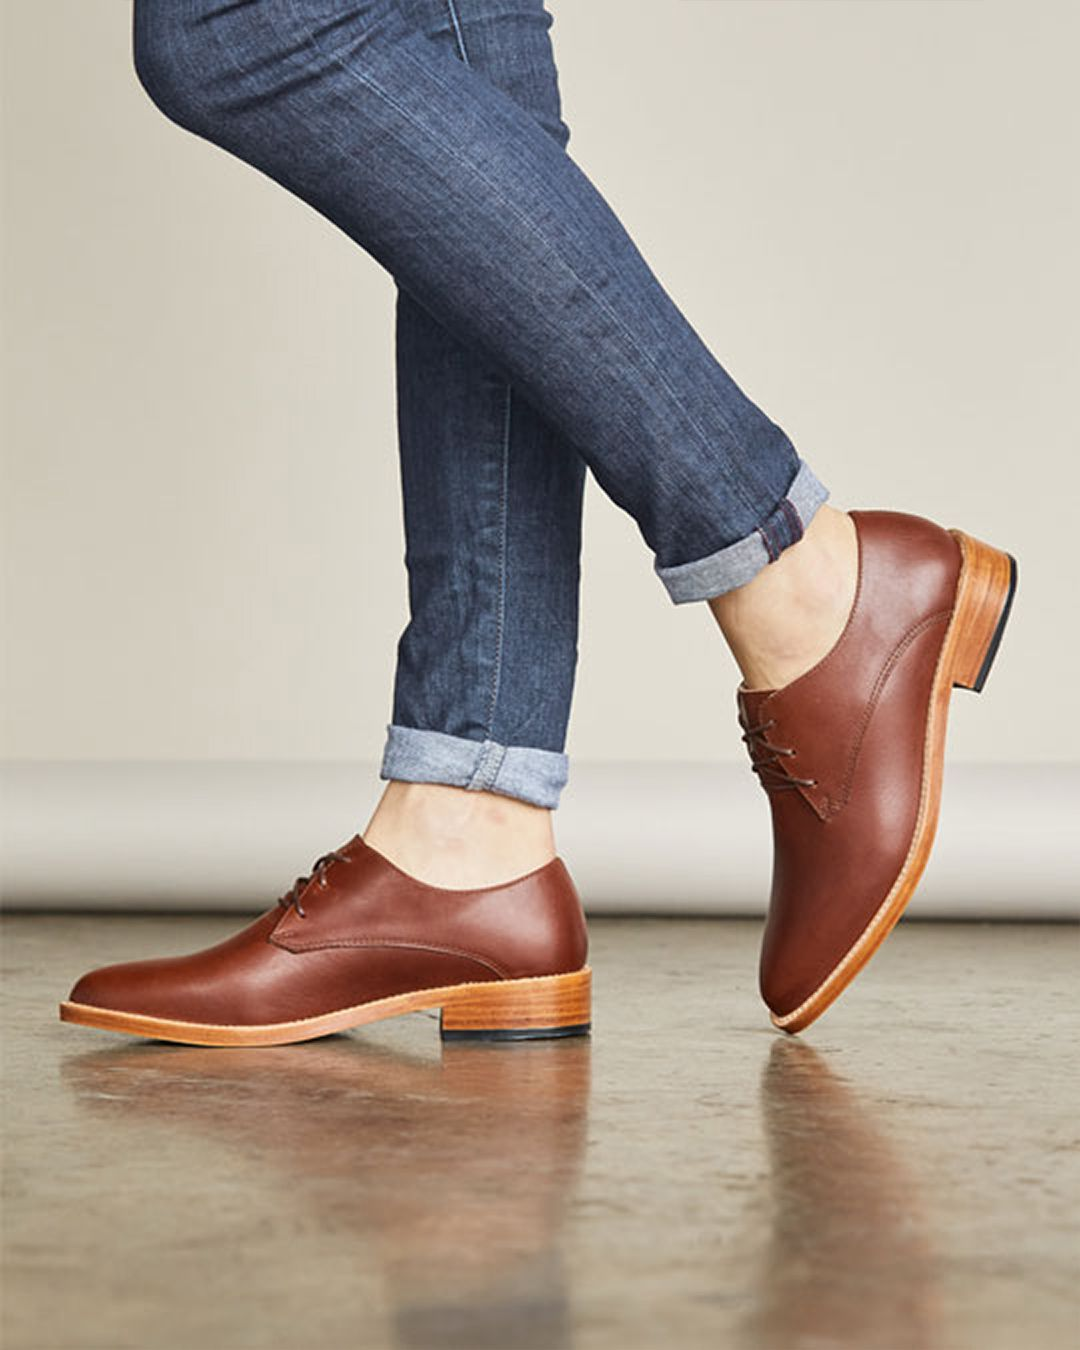 Pin by Maria Peguero on Zapatos mujer in 2021 | Oxford shoes outfit, Women  oxford shoes, Oxford shoes